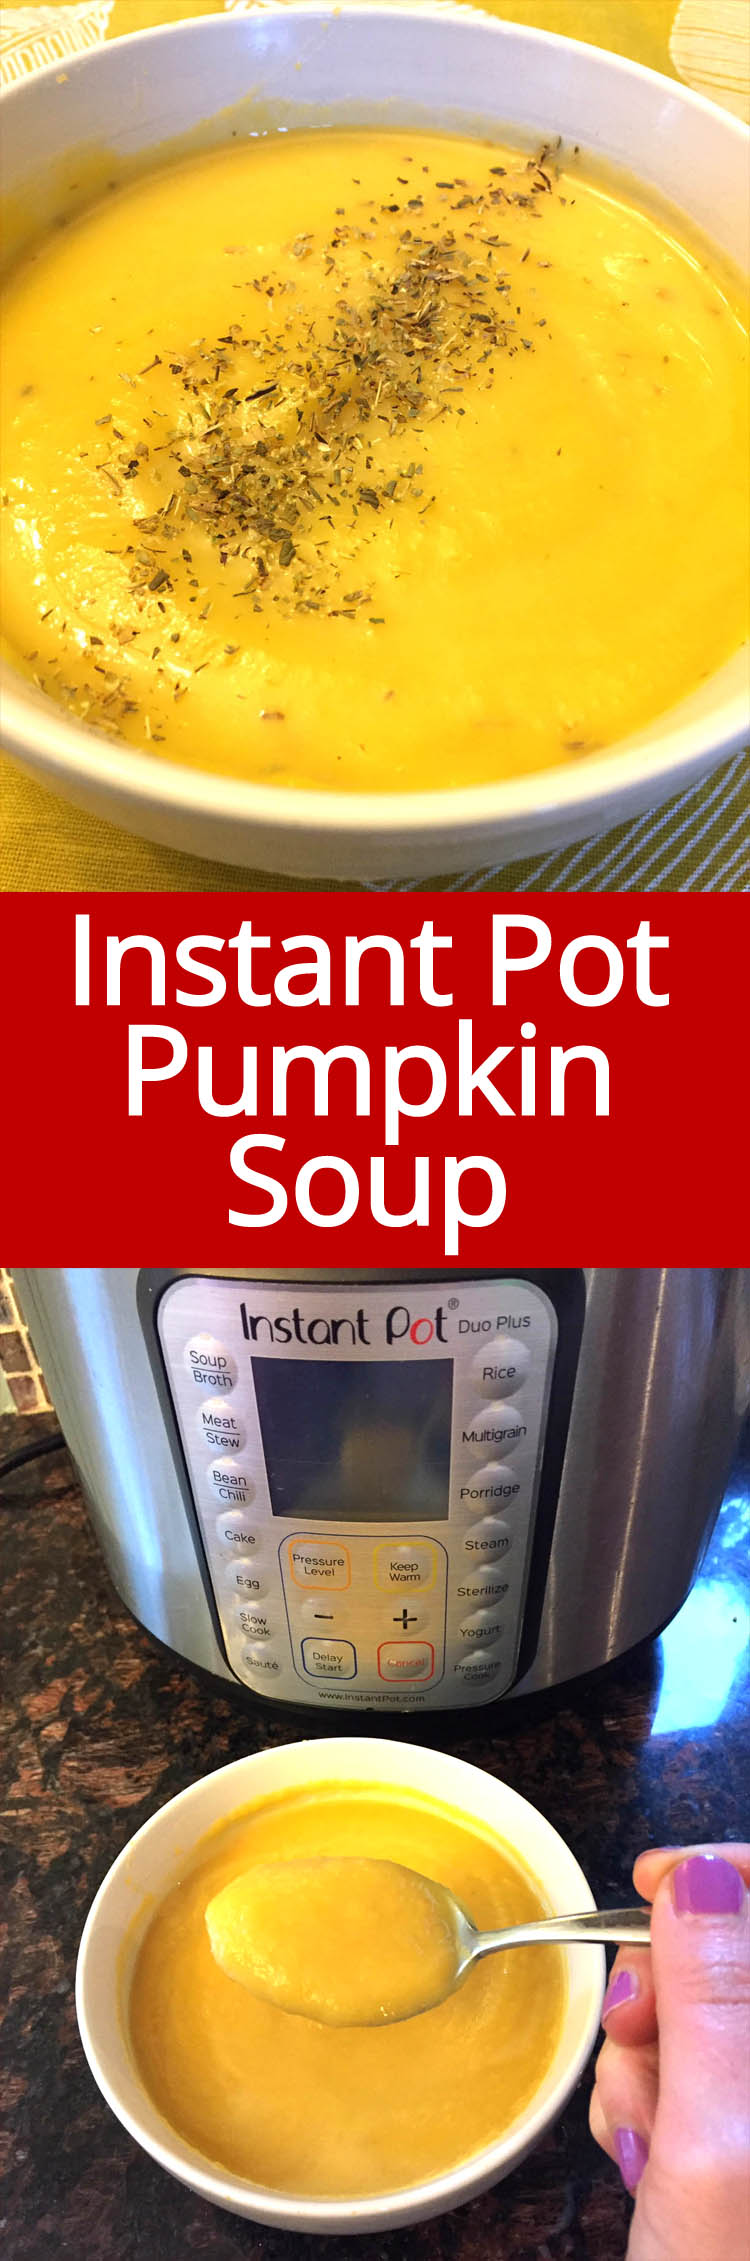 This Instant Pot pumpkin soup recipe is amazing! I love cream of pumpkin!